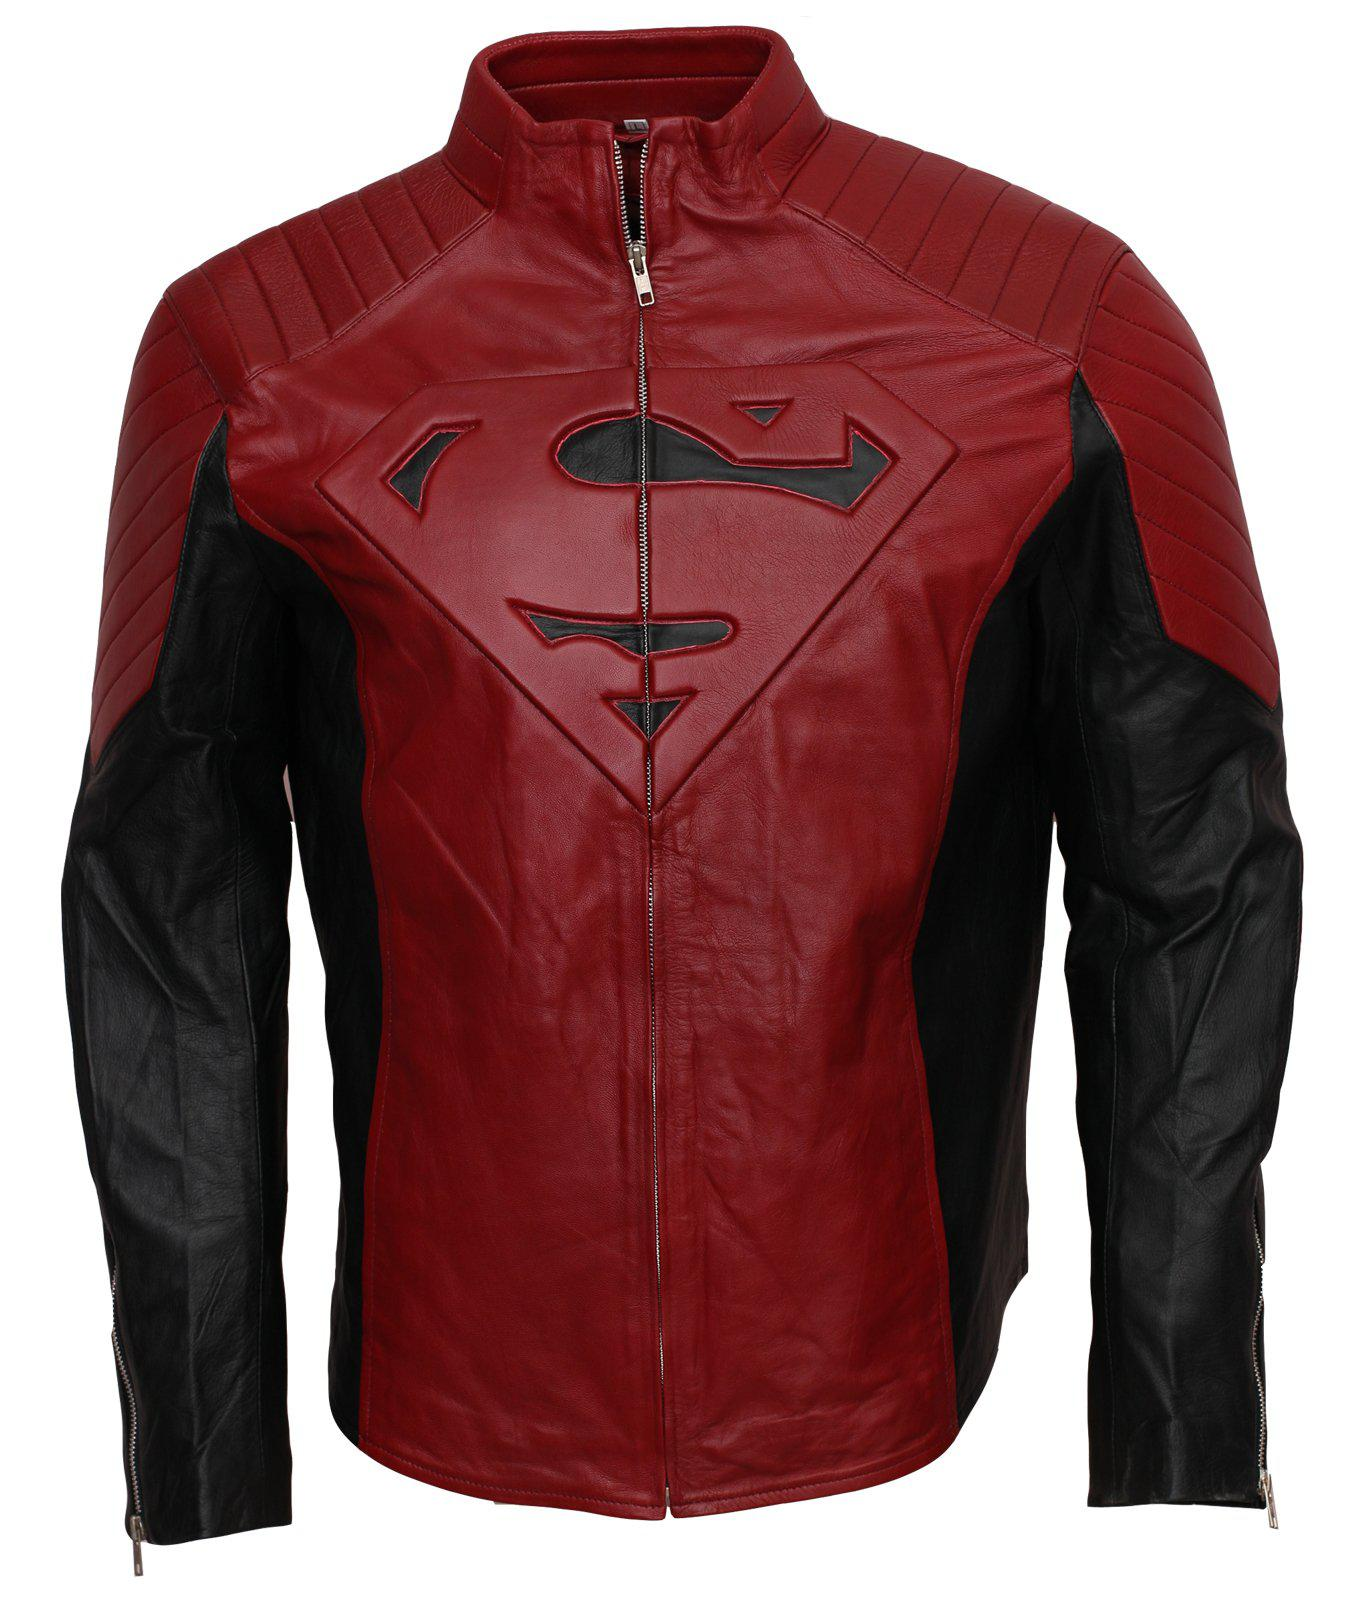 Men's Red and Black smallville tom welling clark kent superman Faux Leather Jacket